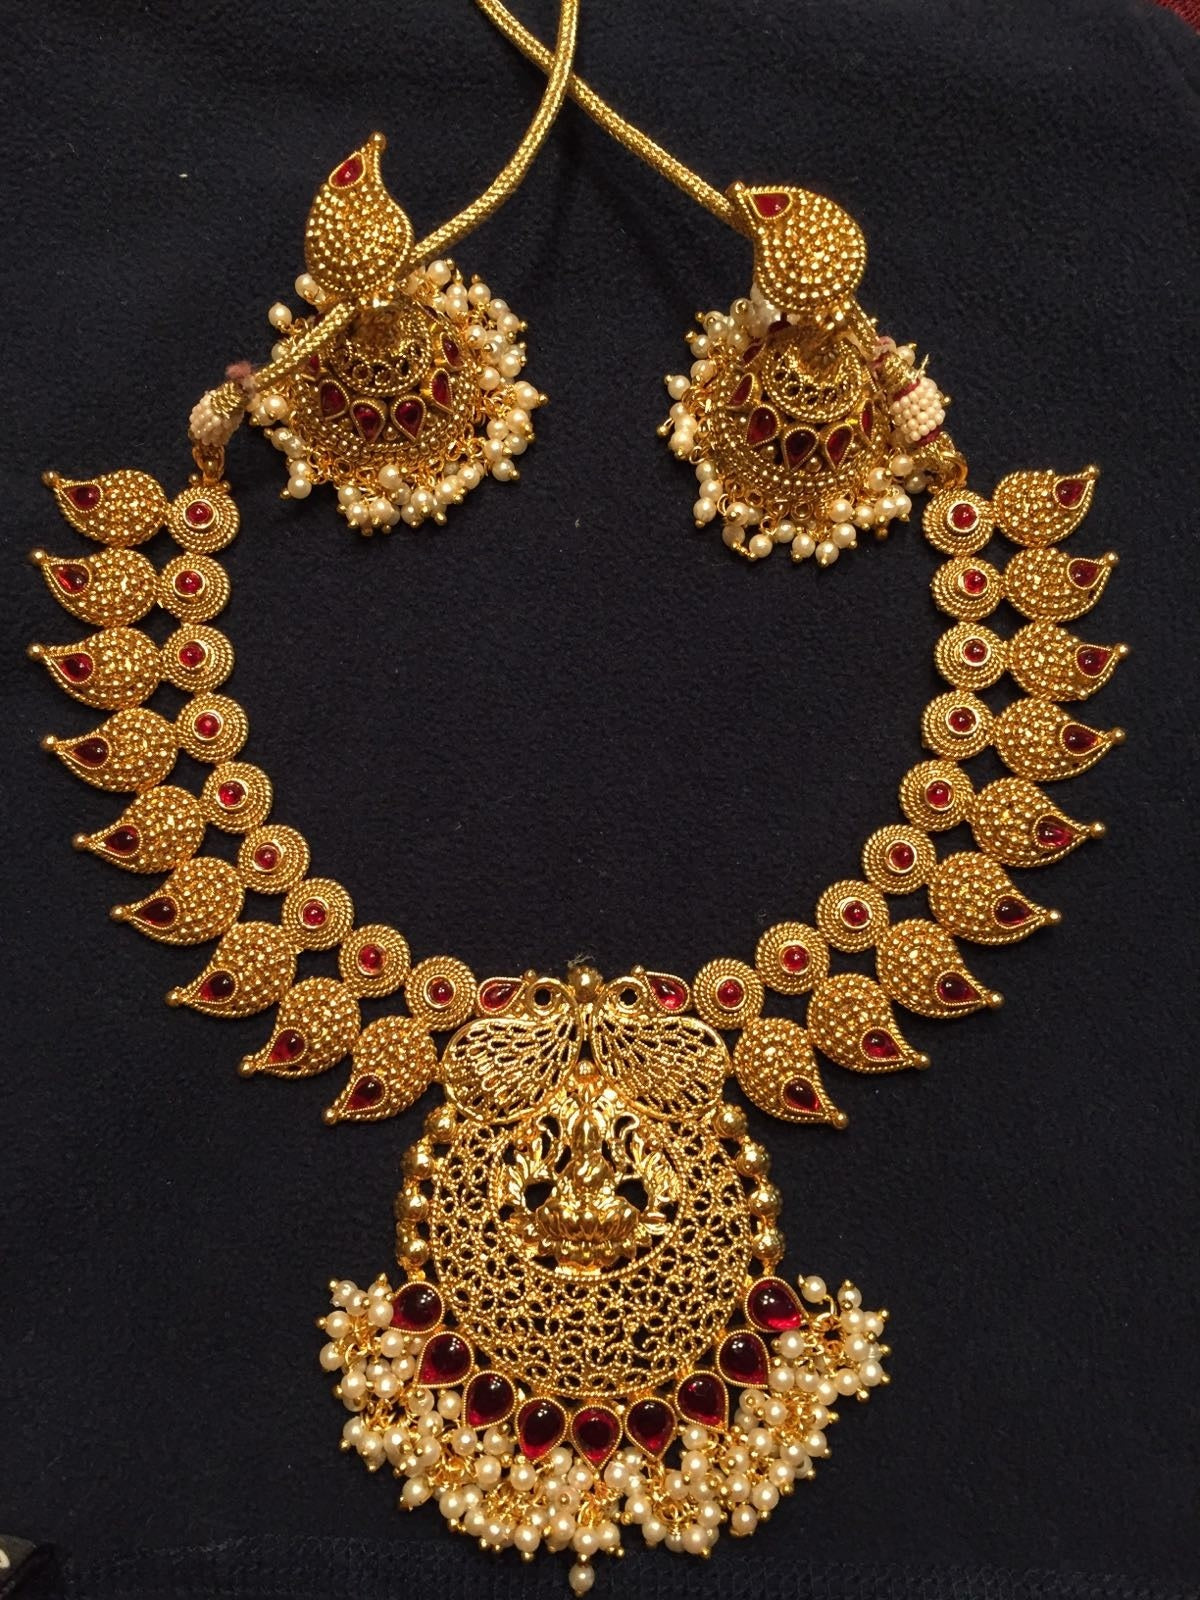 Big Traditional Necklace beautiful Pendant and Jhumka with Gungru